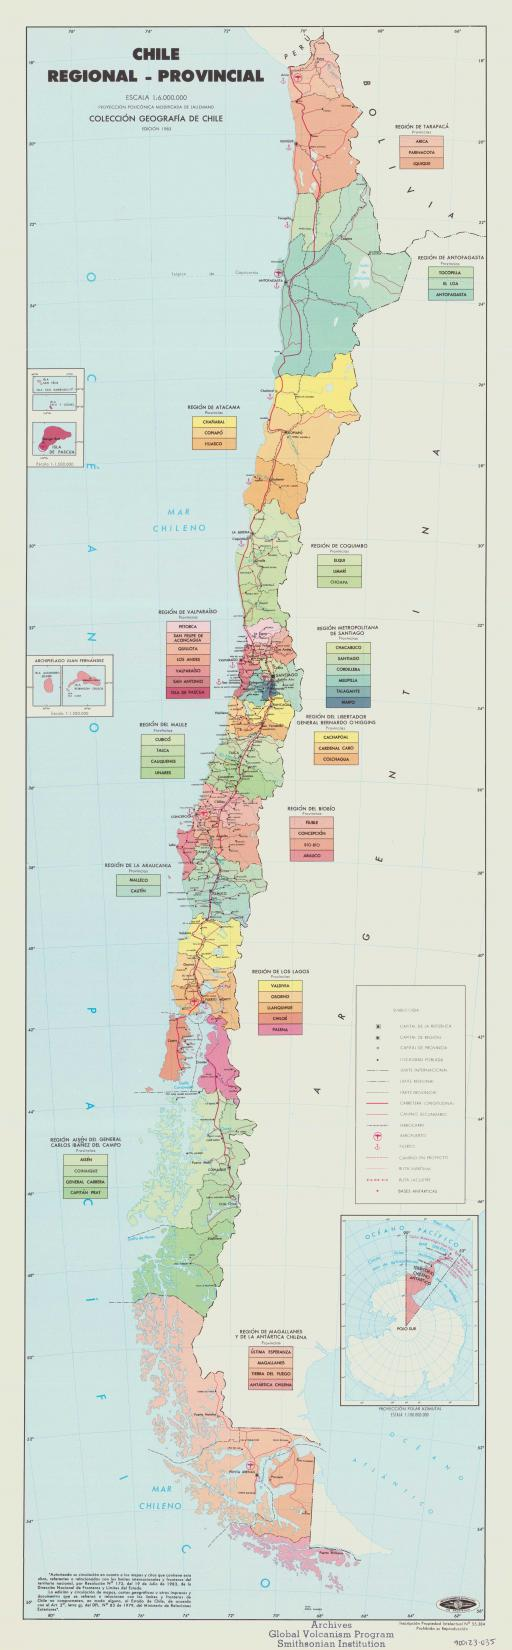 Map of Chile Regional-Provincial